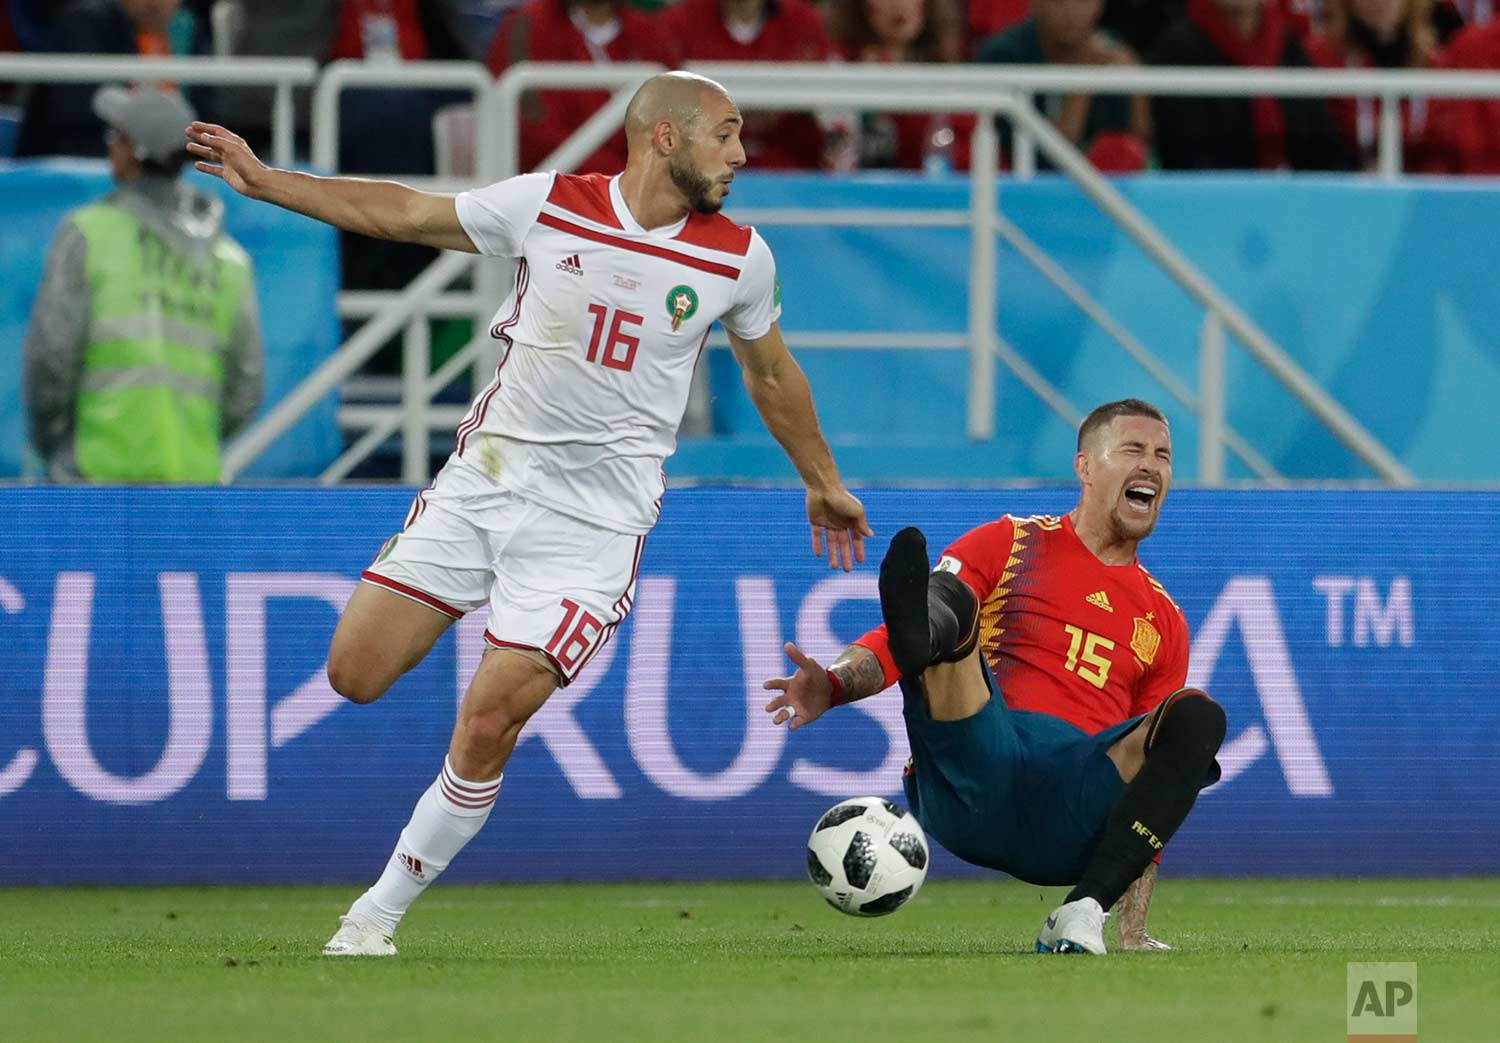 Spain's Sergio Ramos, right falls, loosing his shoe after a tackle by Morocco's Noureddine Amrabat, left, during the group B match between Spain and Morocco at the 2018 soccer World Cup at the Kaliningrad Stadium in Kaliningrad, Russia, Monday, June 25, 2018. (AP Photo/Petr David Josek)